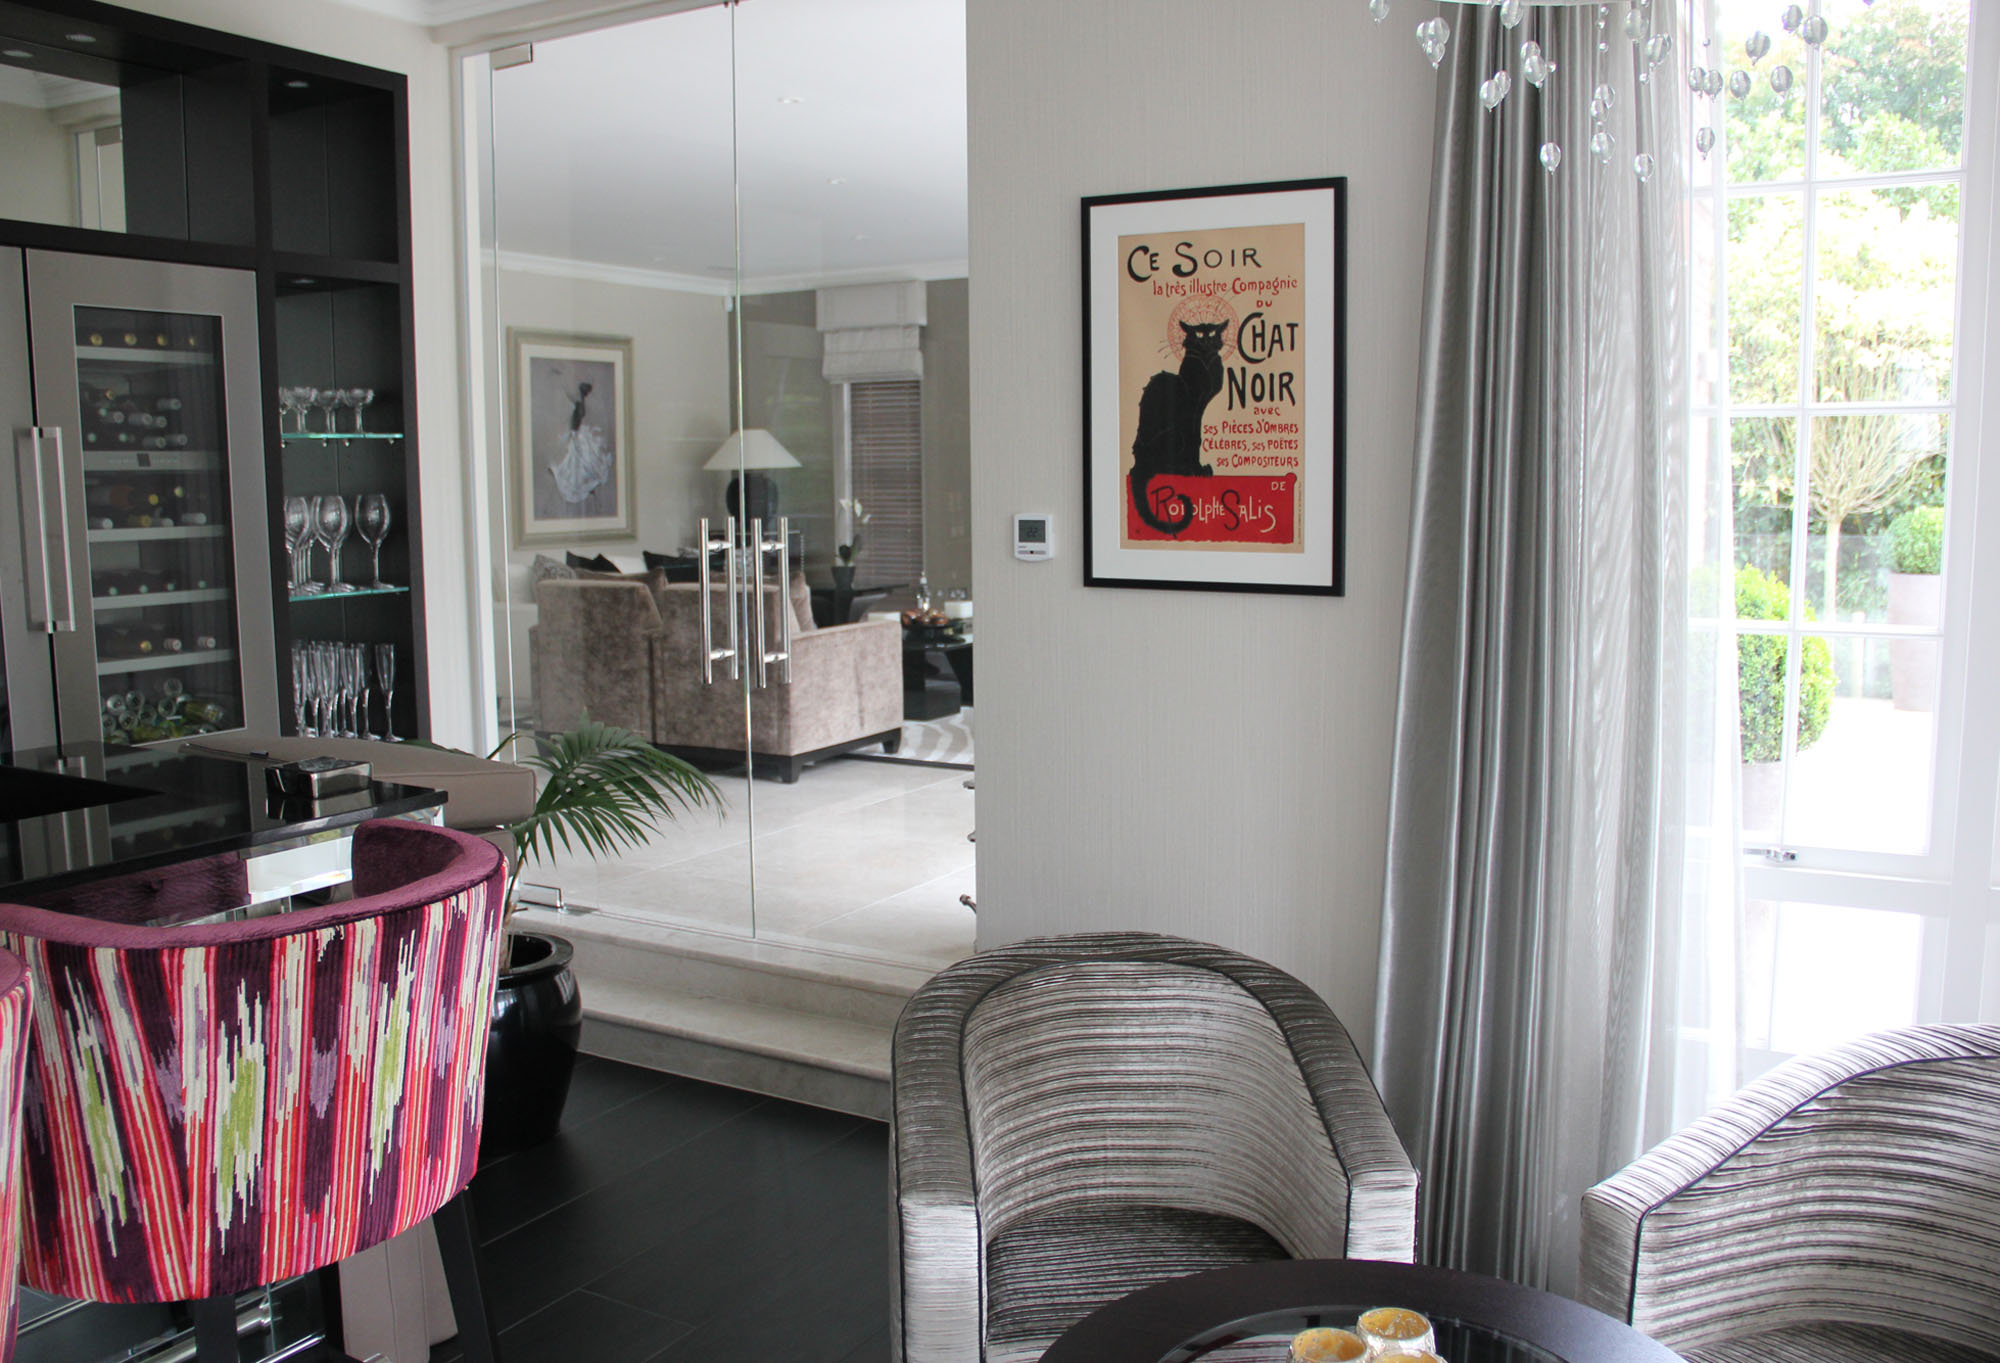 Sleek, Art Deco dining area with classic black cat poster; red, purple, black, grey